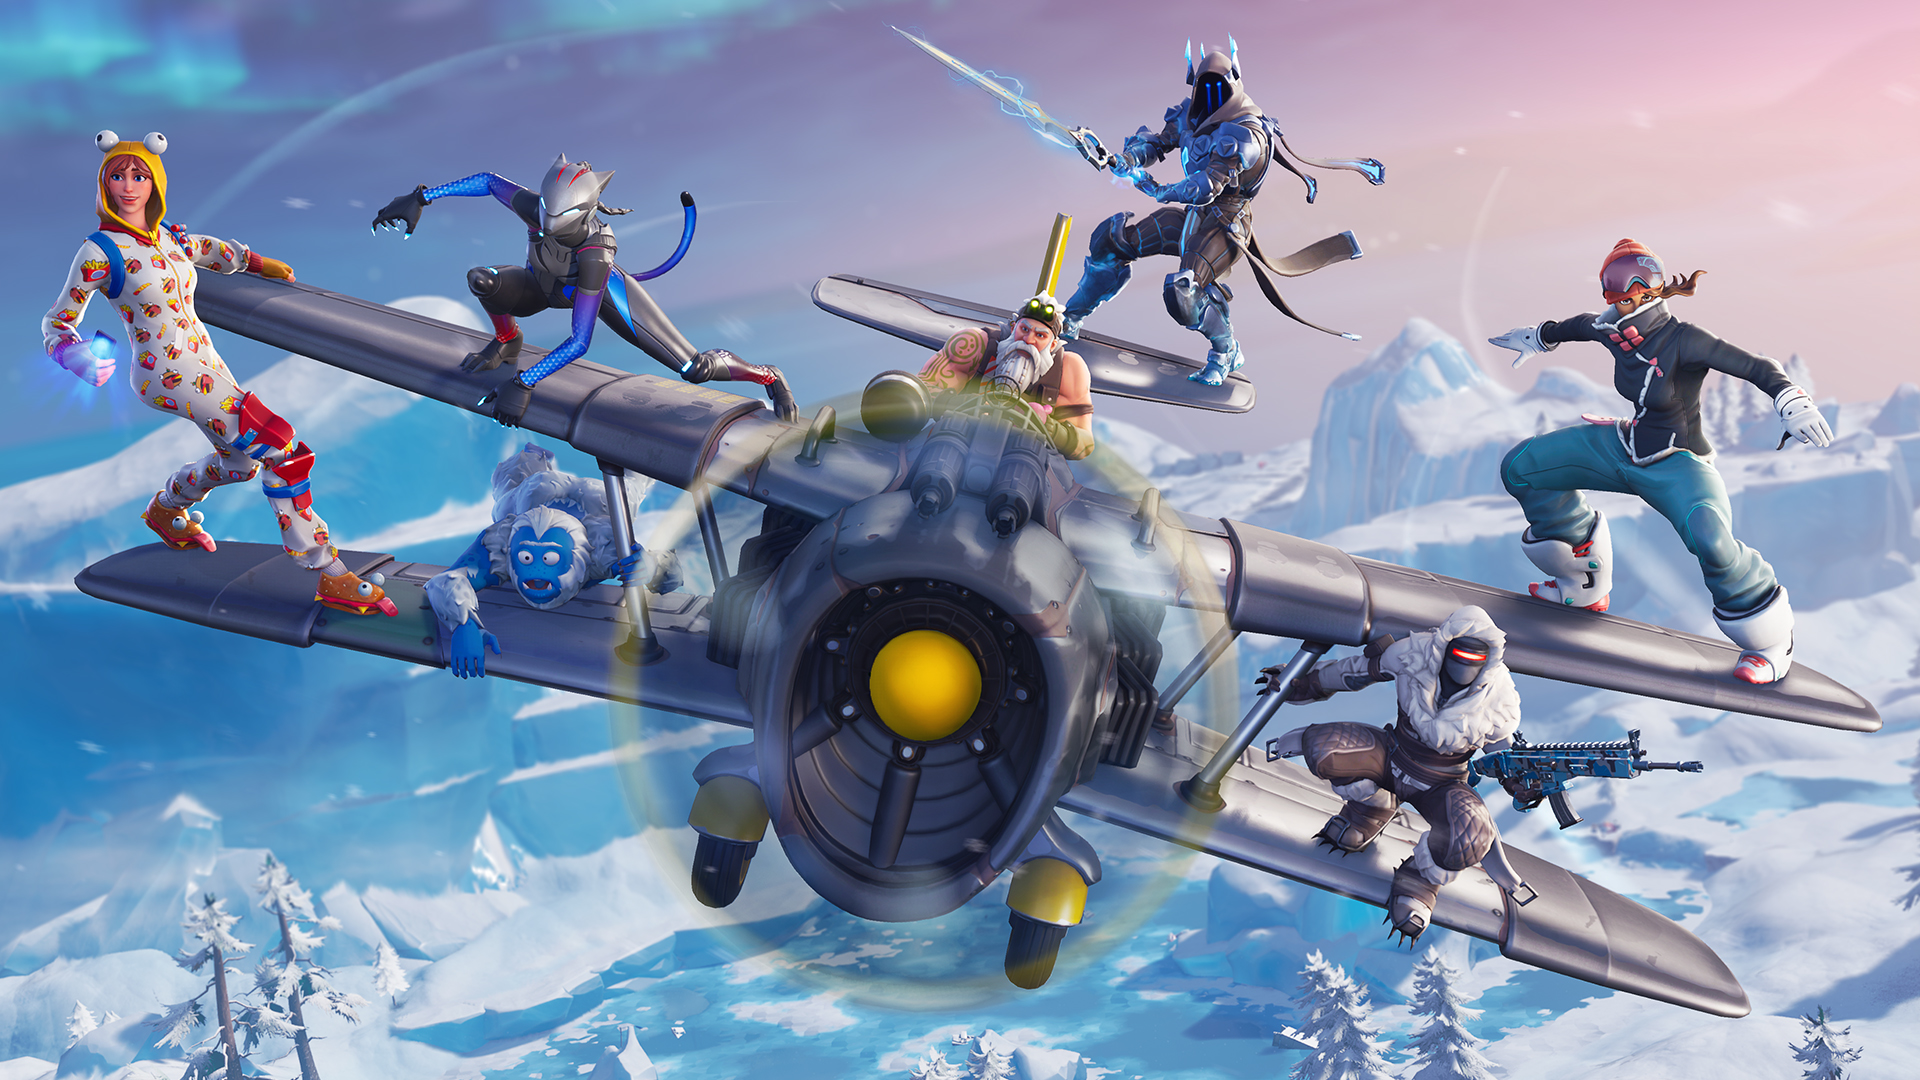 How to Find X 4 Stormwing Fortnite Location